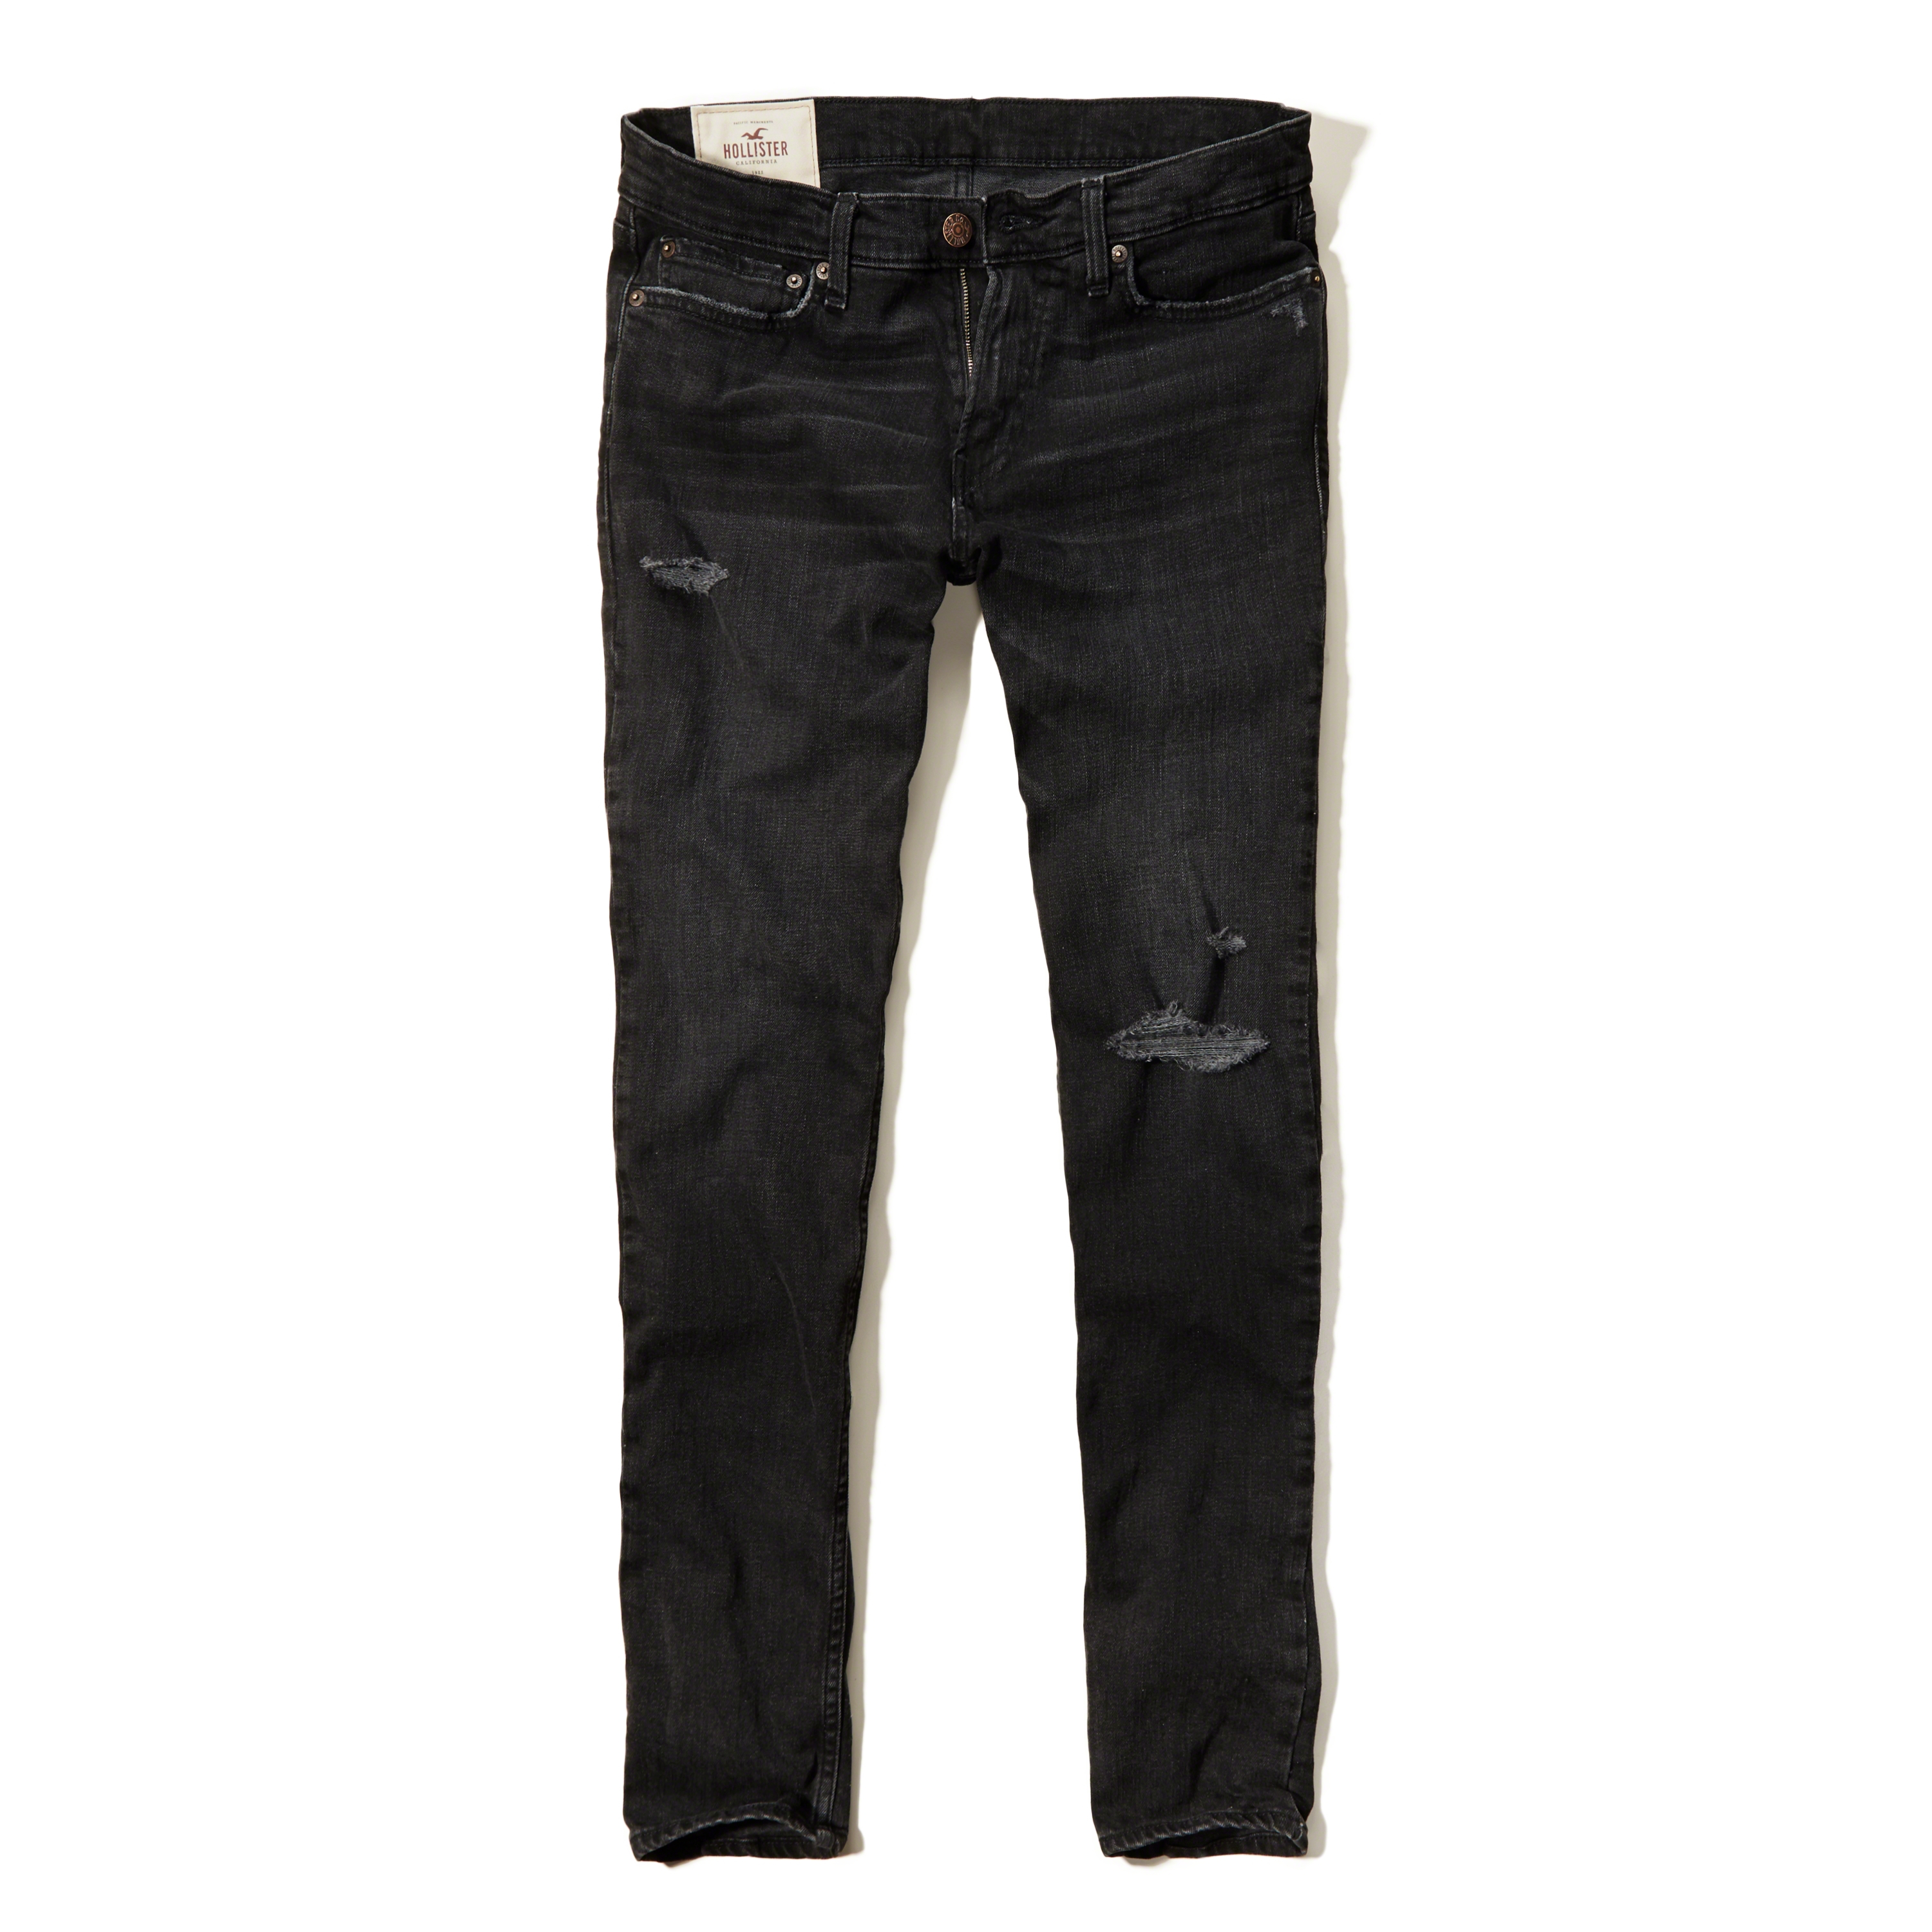 hollister dark jeans for men - photo #11